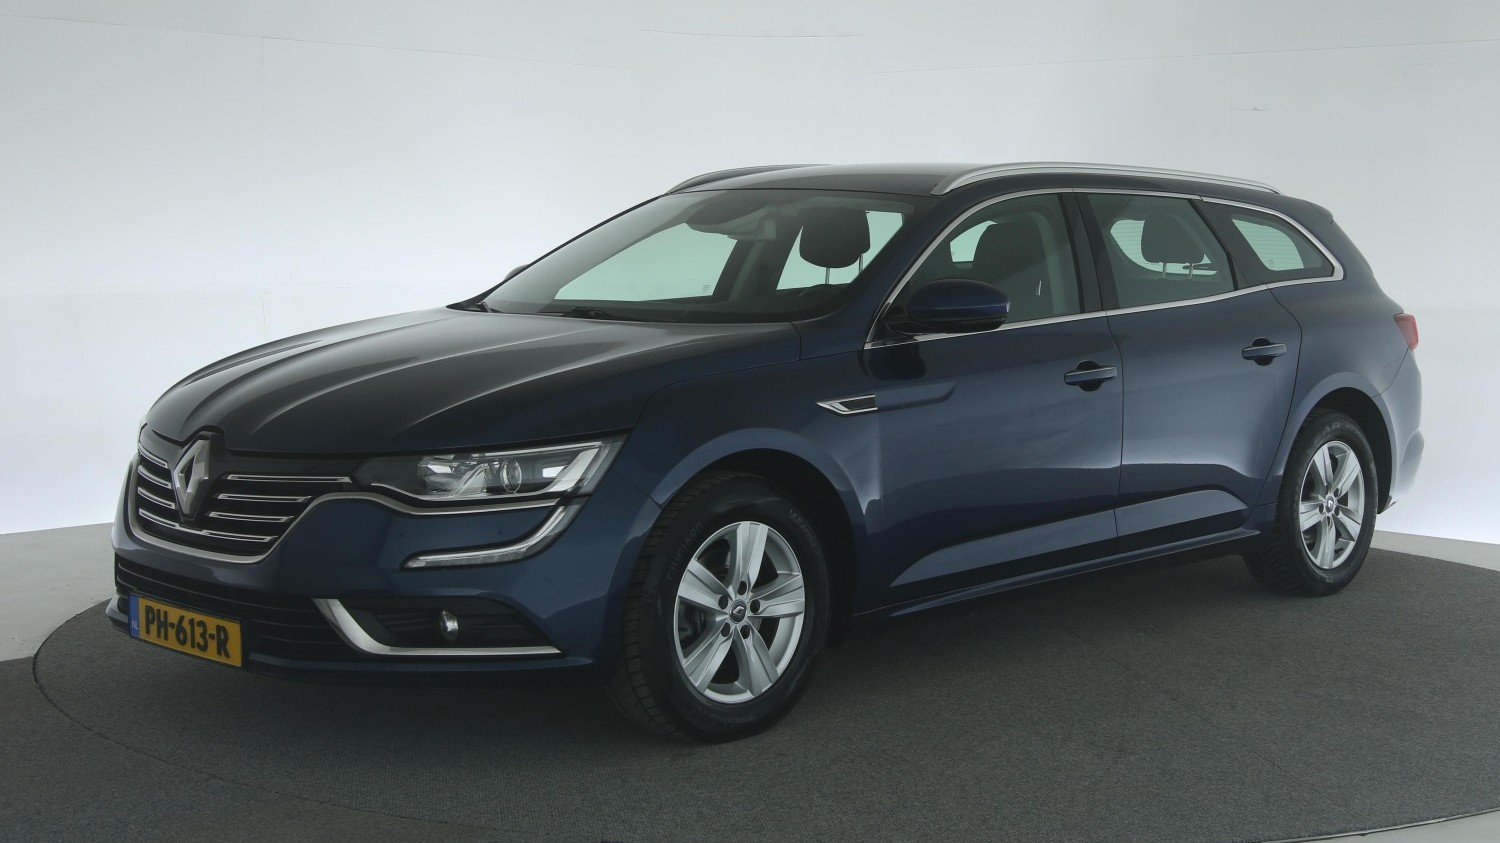 Renault Talisman Station 2017 PH-613-R 1